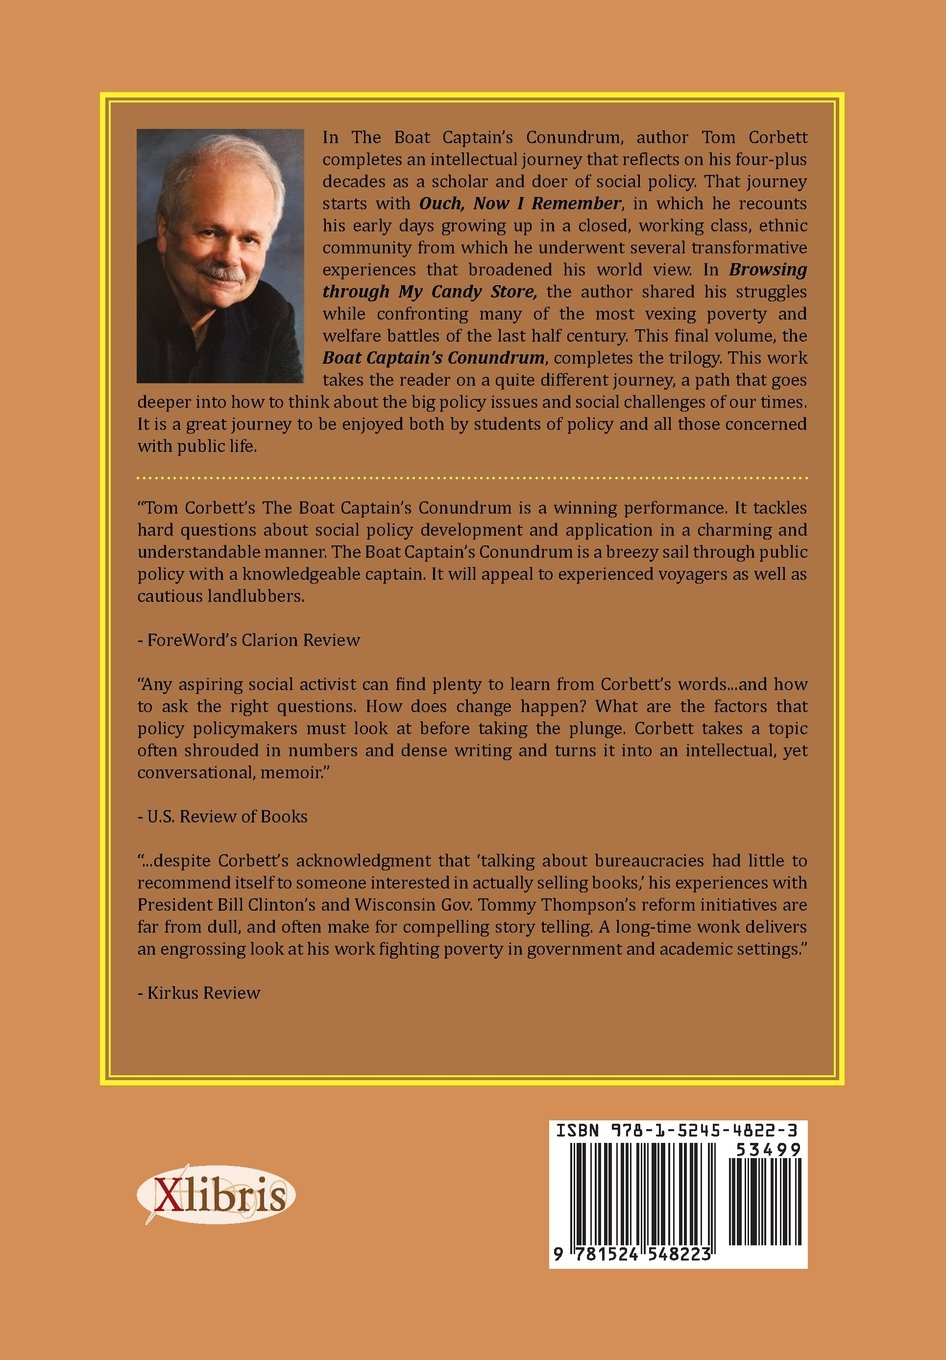 The Boat Captain's Conundrum: A Whimsical Tour Through A Policy Wonk's  Mind: Tom Corbett Phd: 9781524548223: Amazon: Books